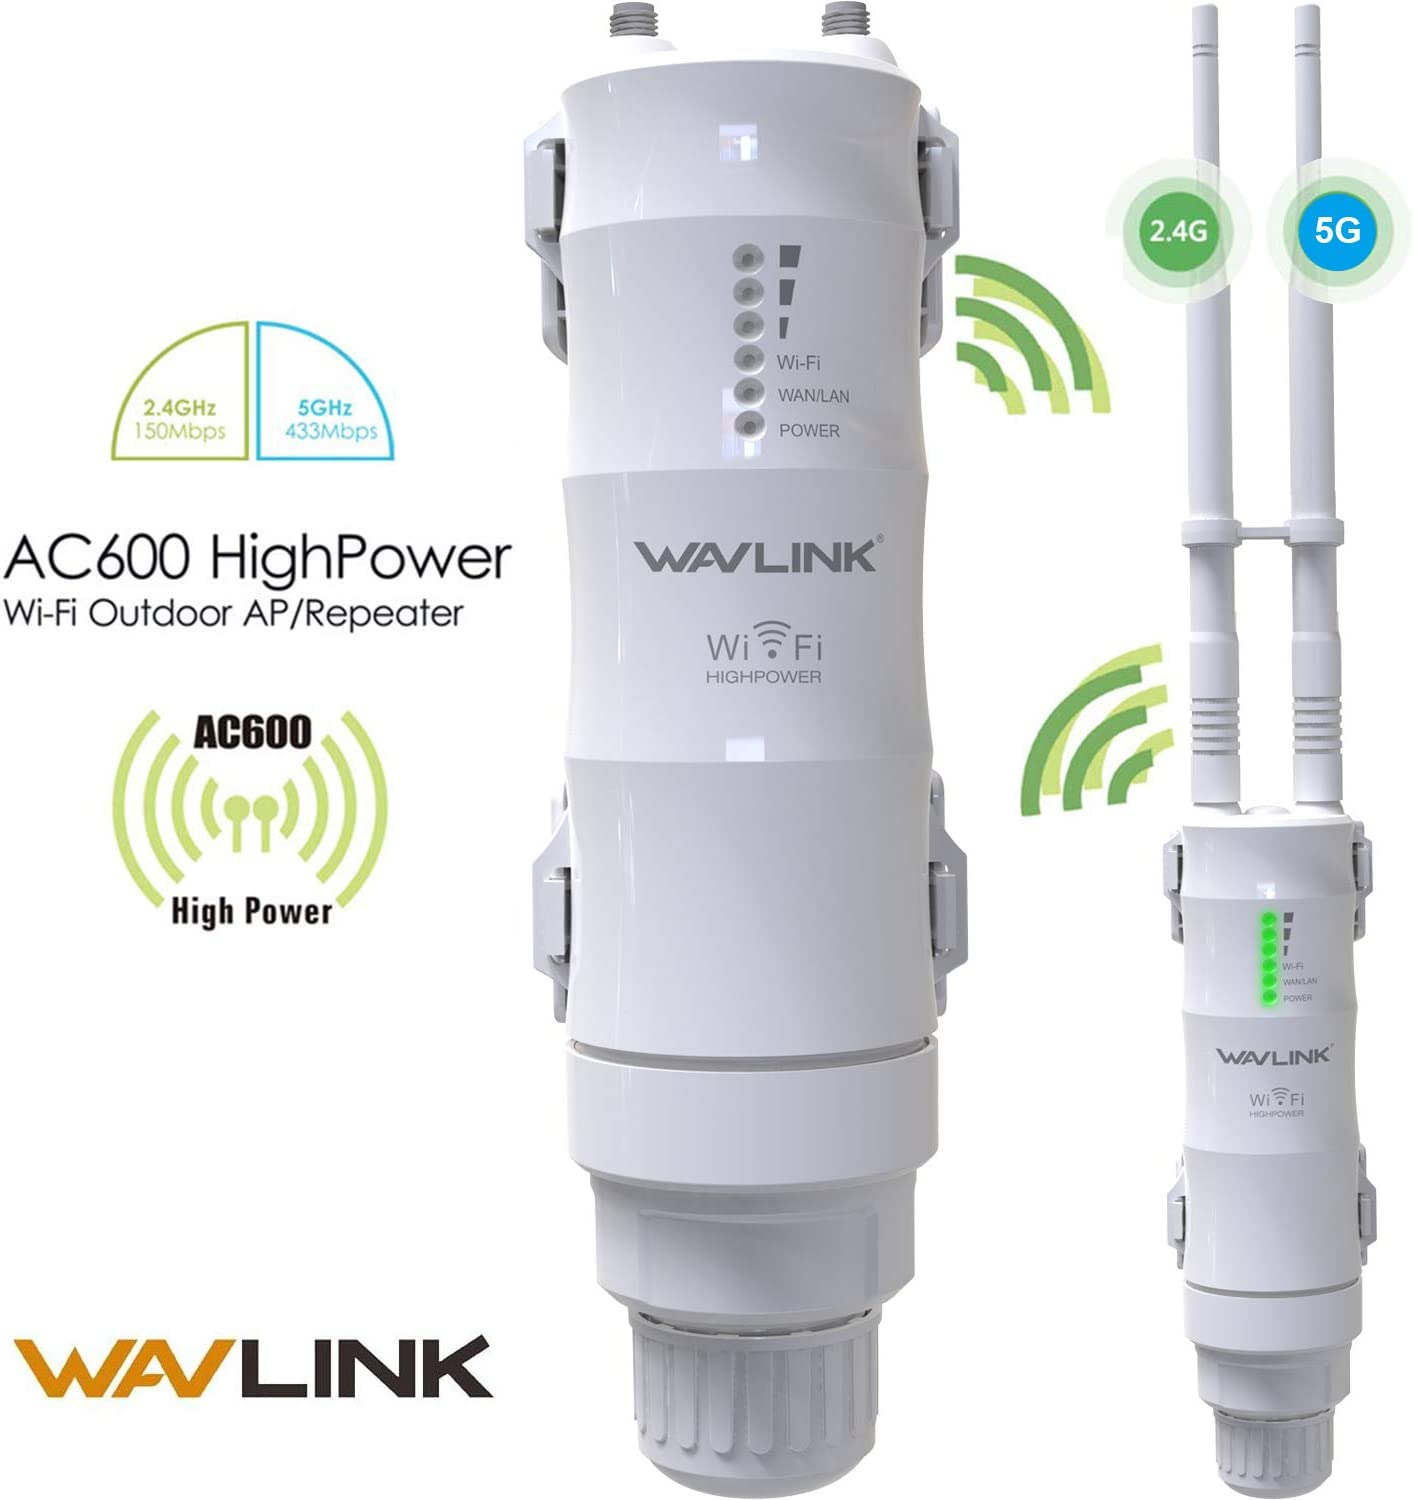 【Upgrade Version】 Wavlink-Wn570Ha1-Ac600 Access Point Dual Band 2.4+5G 600Mbps 3 bei 1 Outdoor Wireless Ap/Router/Repeater Wifi Blast Range Extender Internet Signal Booster Amplifier bei Poe & 802.11Ac